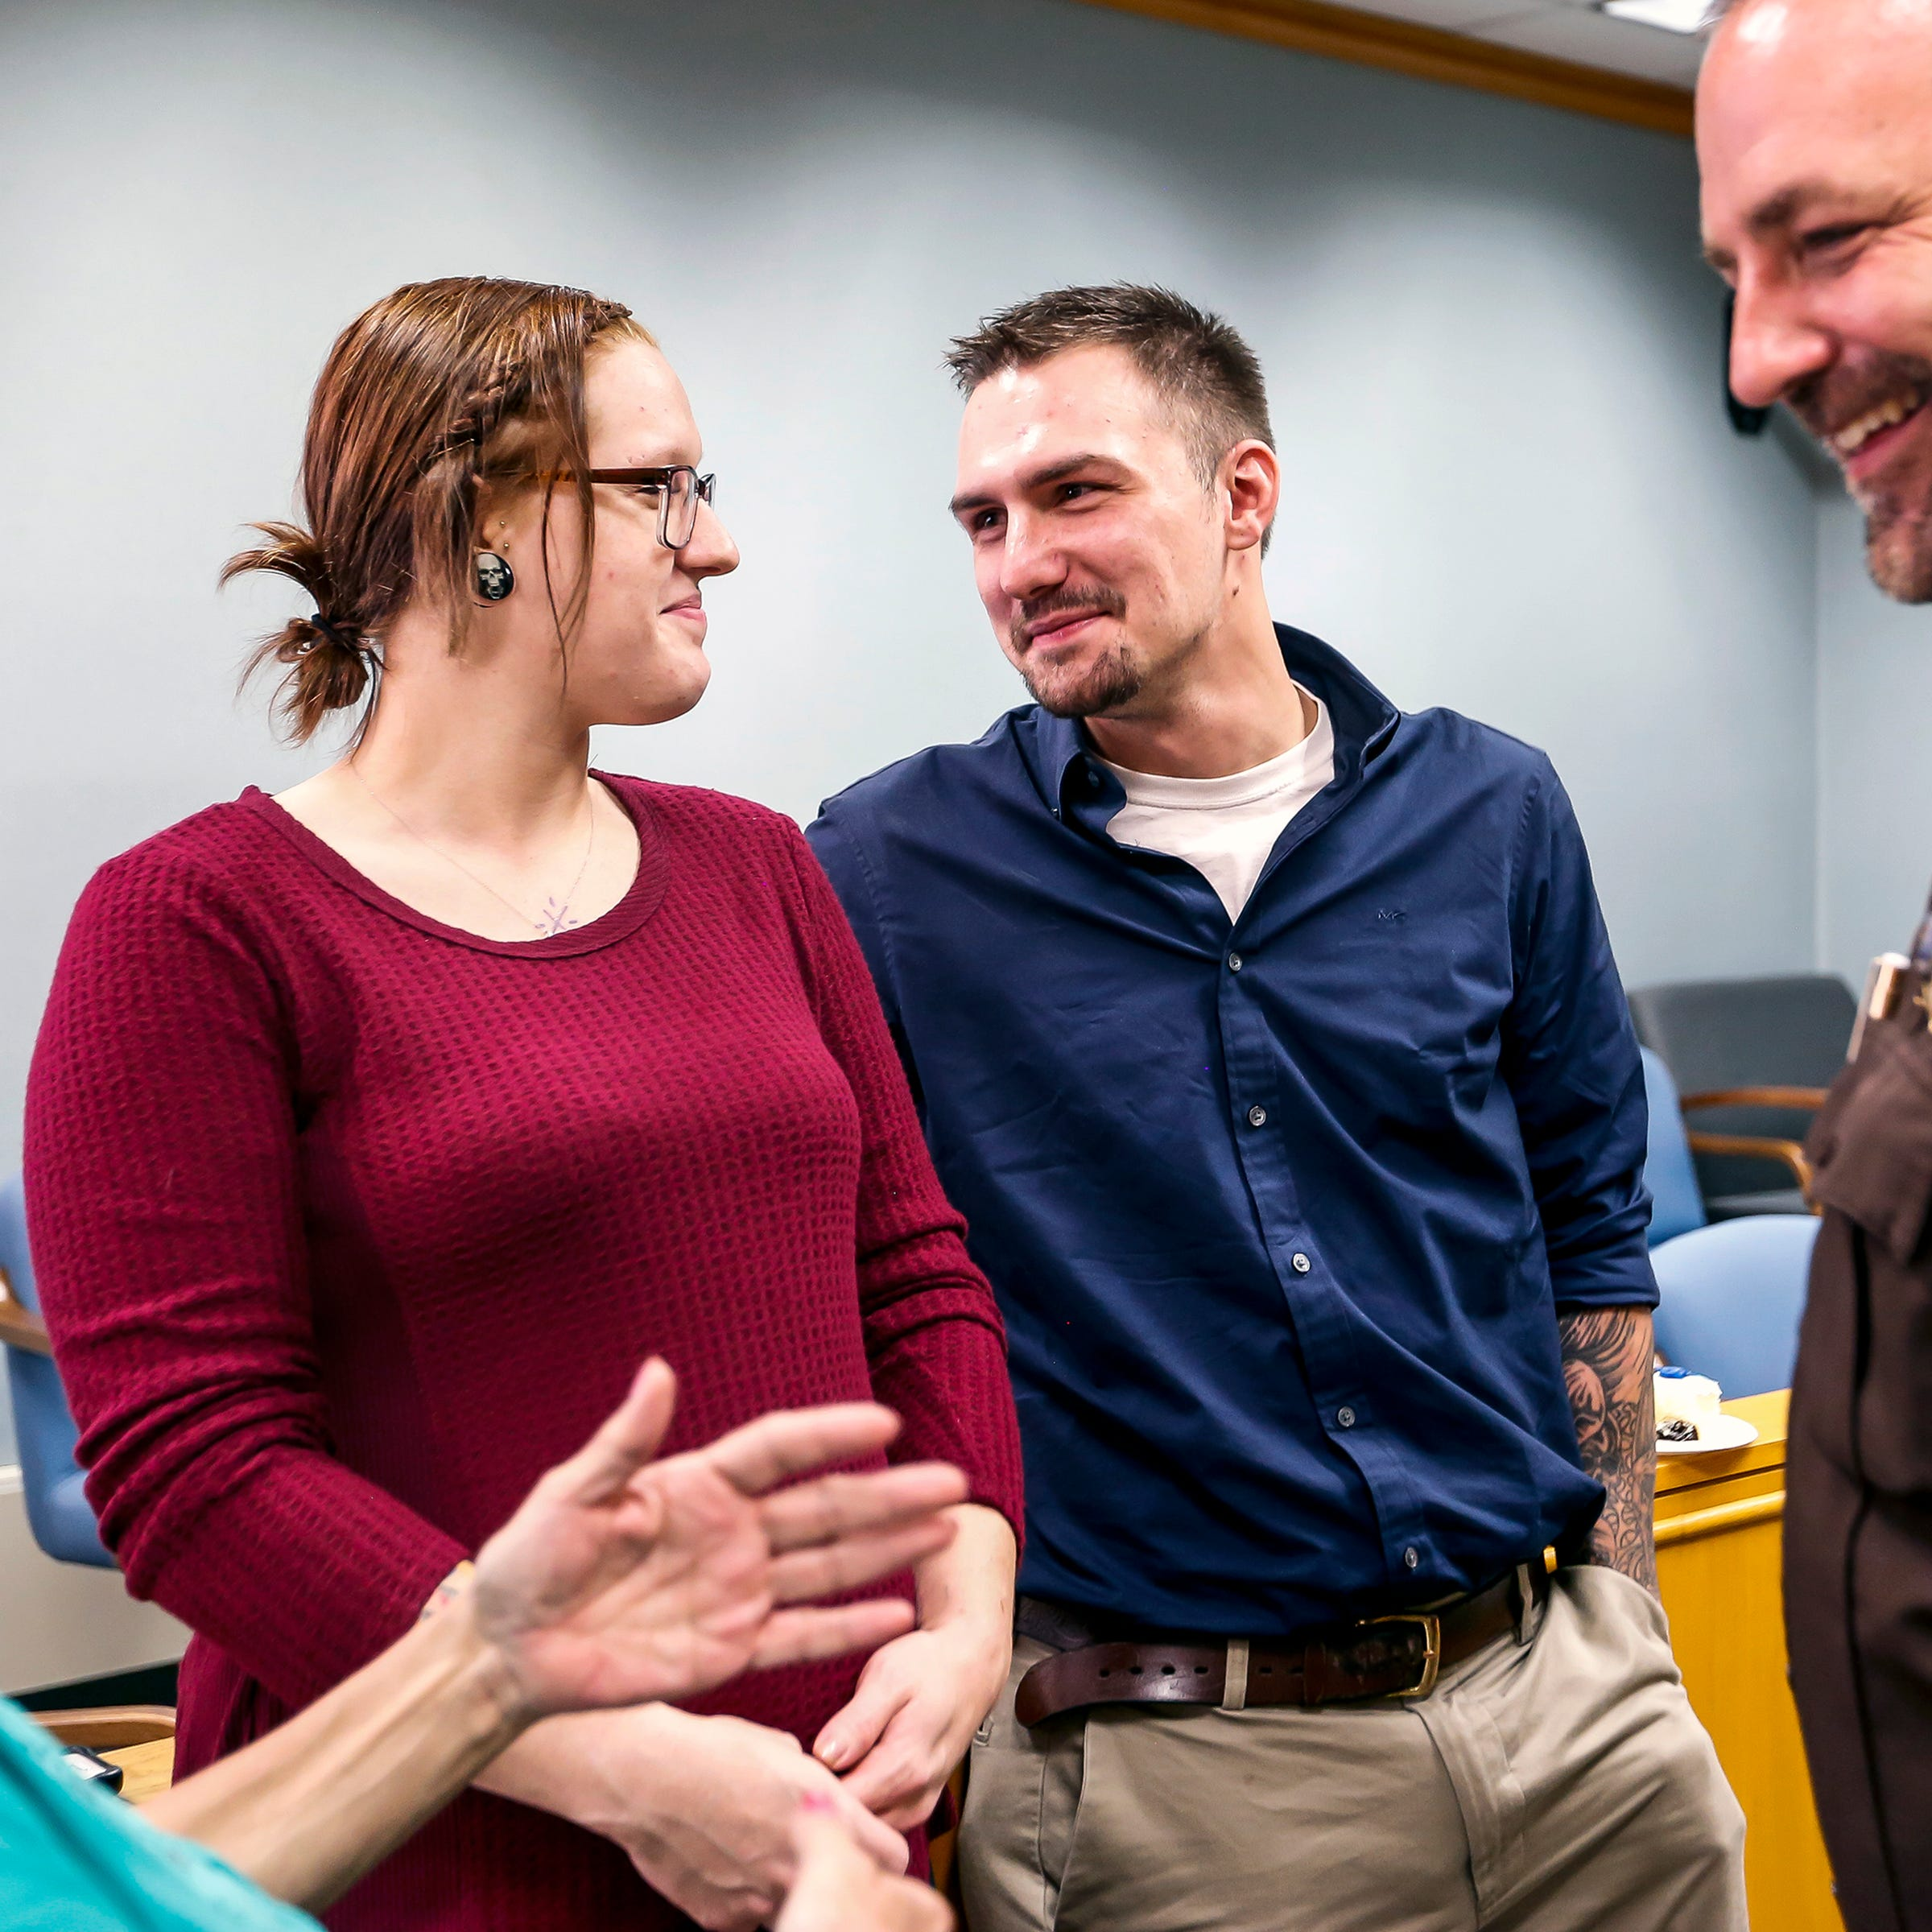 Brandon Jagodzinski and his fiance Kelsey Koehler mingle with family members, law enforcement officers, and other drug court participants, during his graduation ceremony from the Portage County drug court in Stevens Point, Wis., Monday, Sept. 17, 2018.